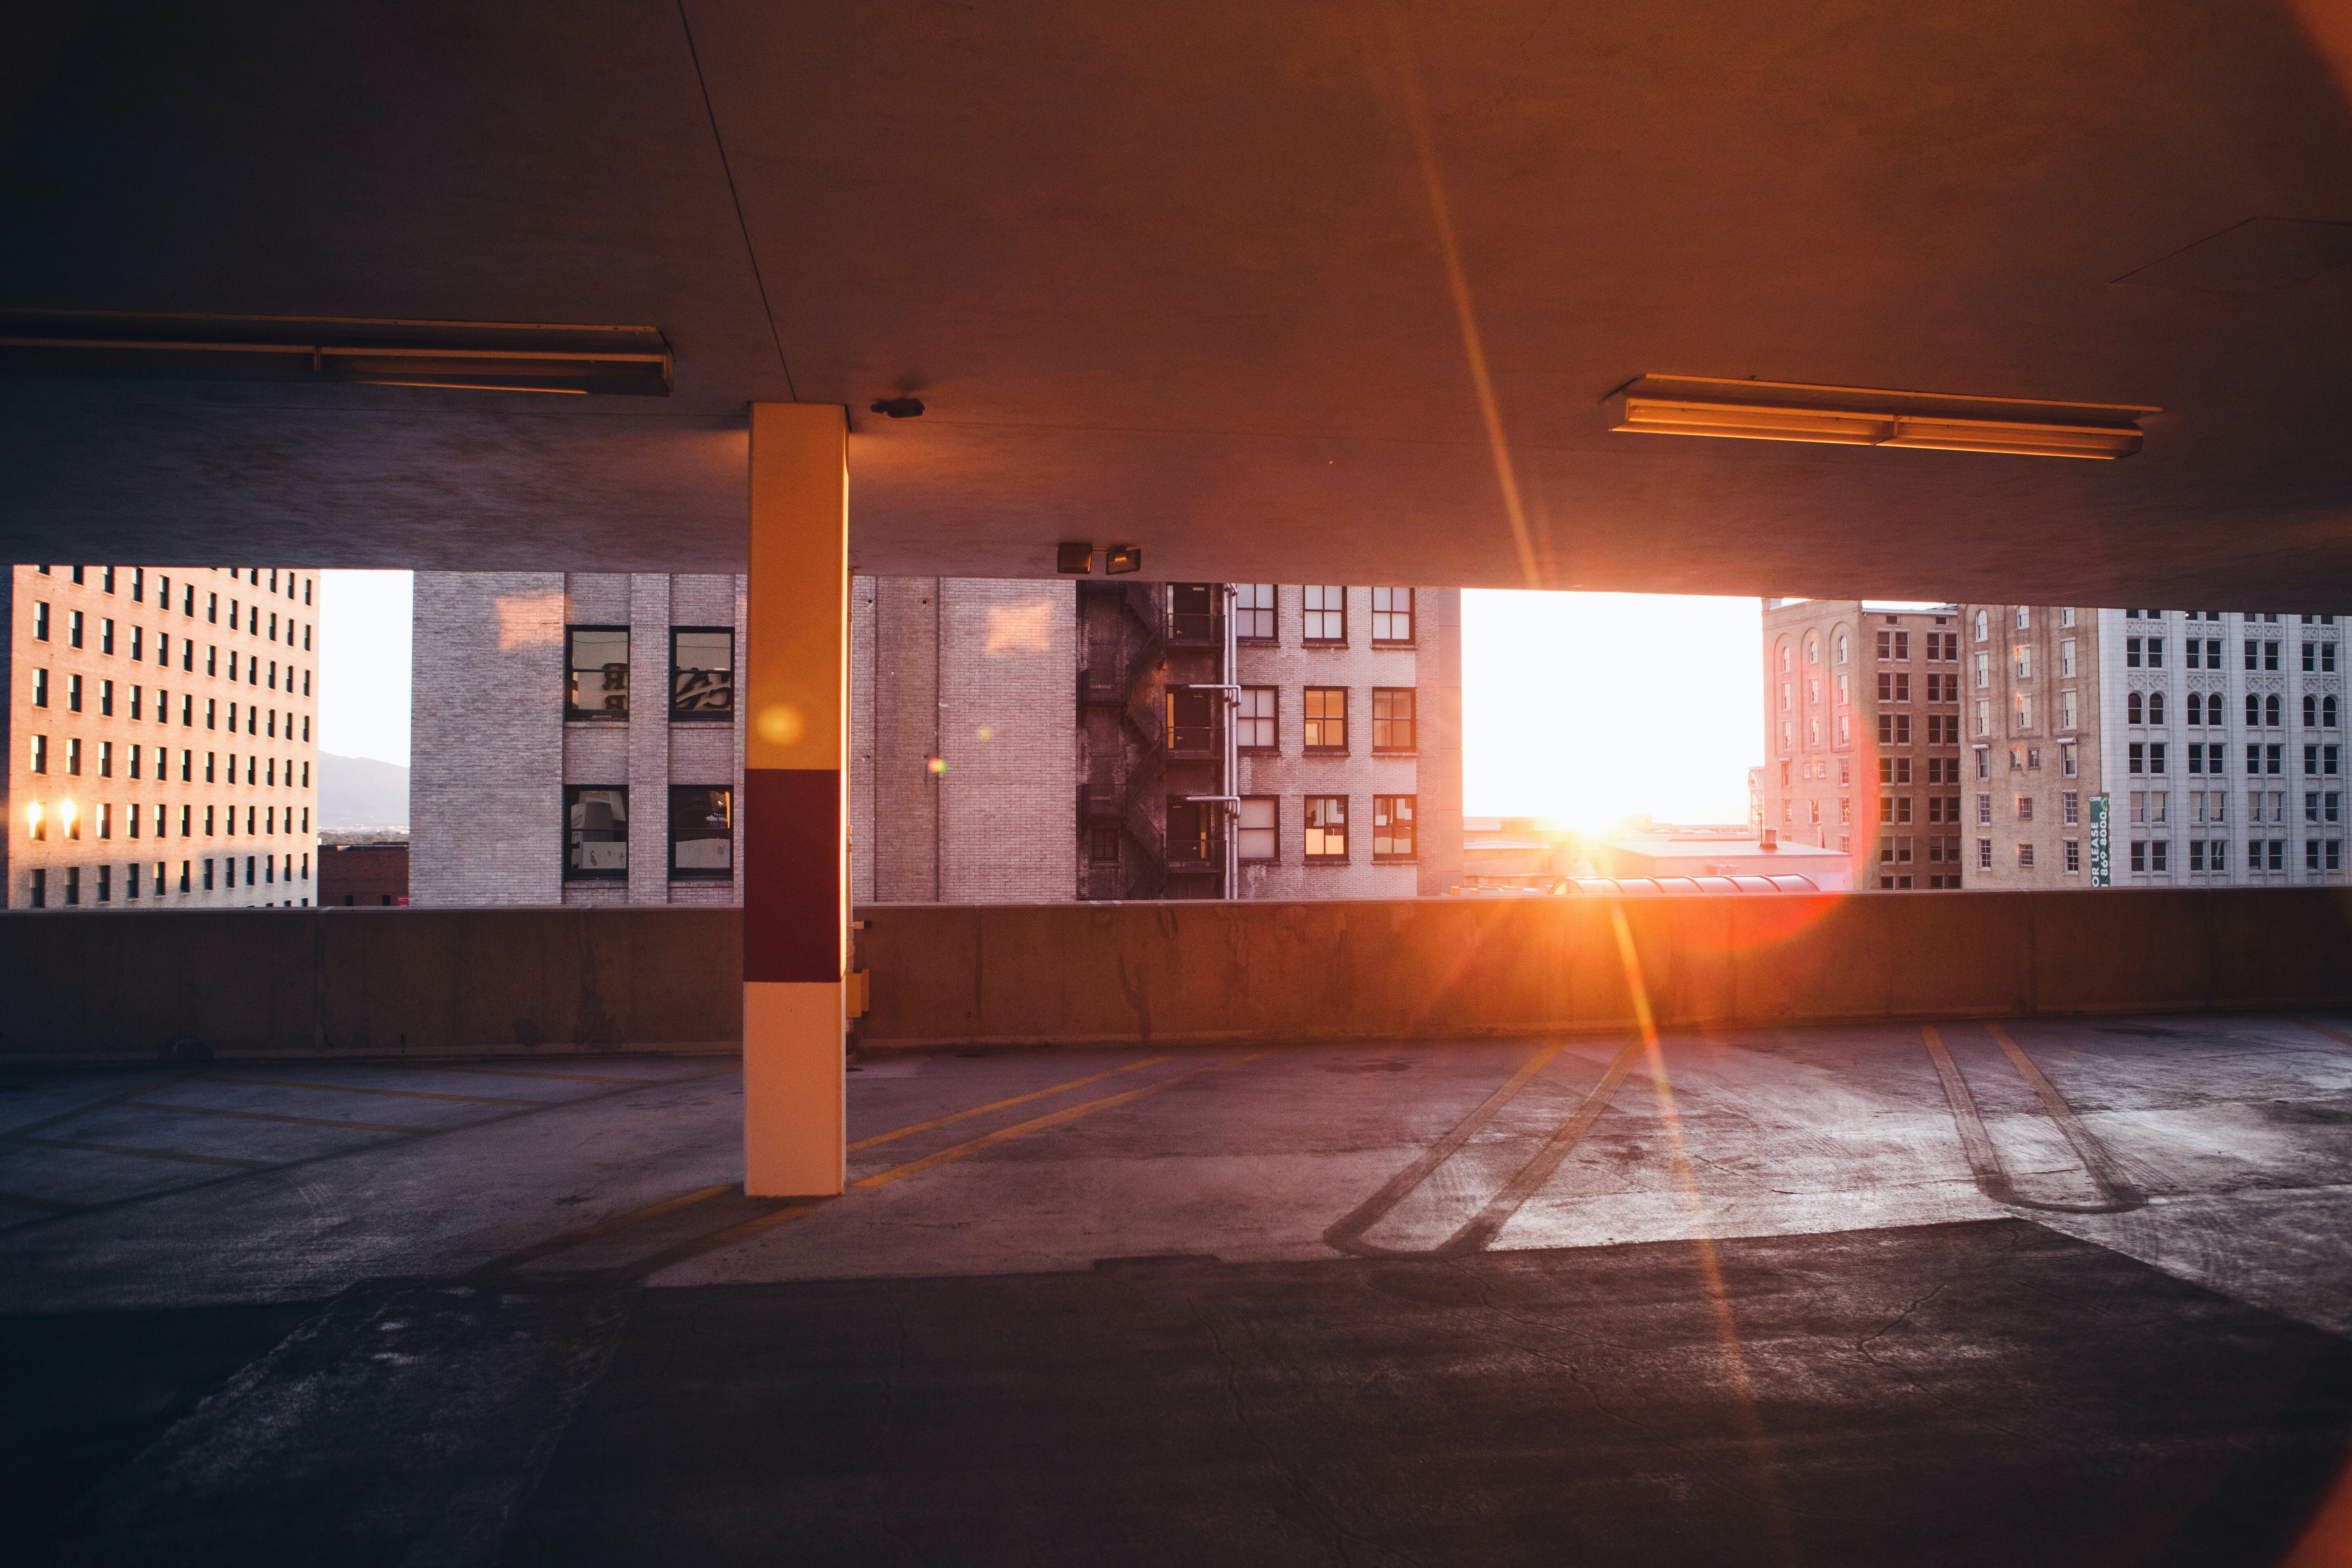 Sun peeking through an empty city car park next to buildings in Salt Lake City